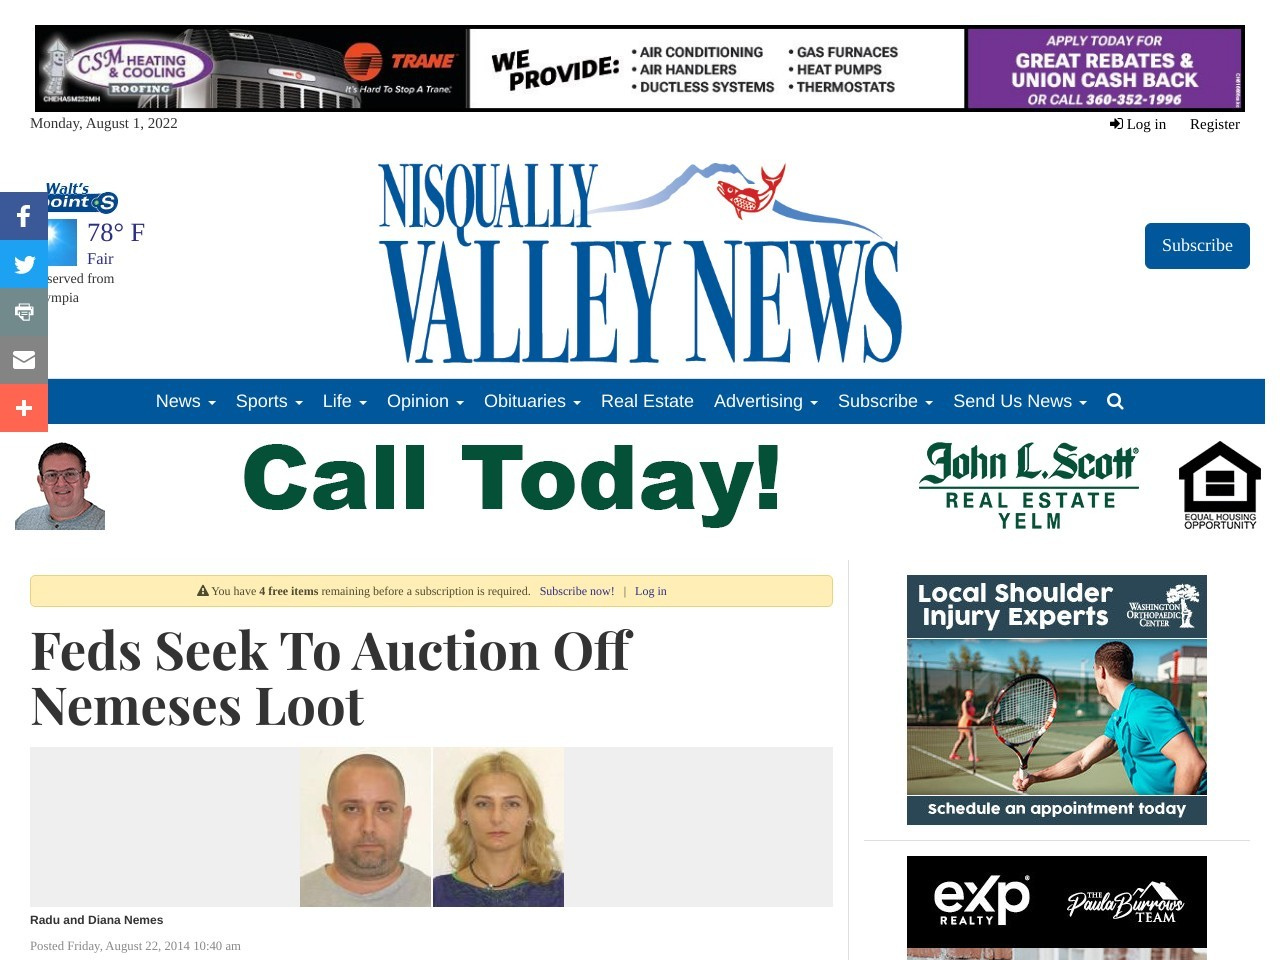 Feds Seek To Auction Off Nemeses Loot